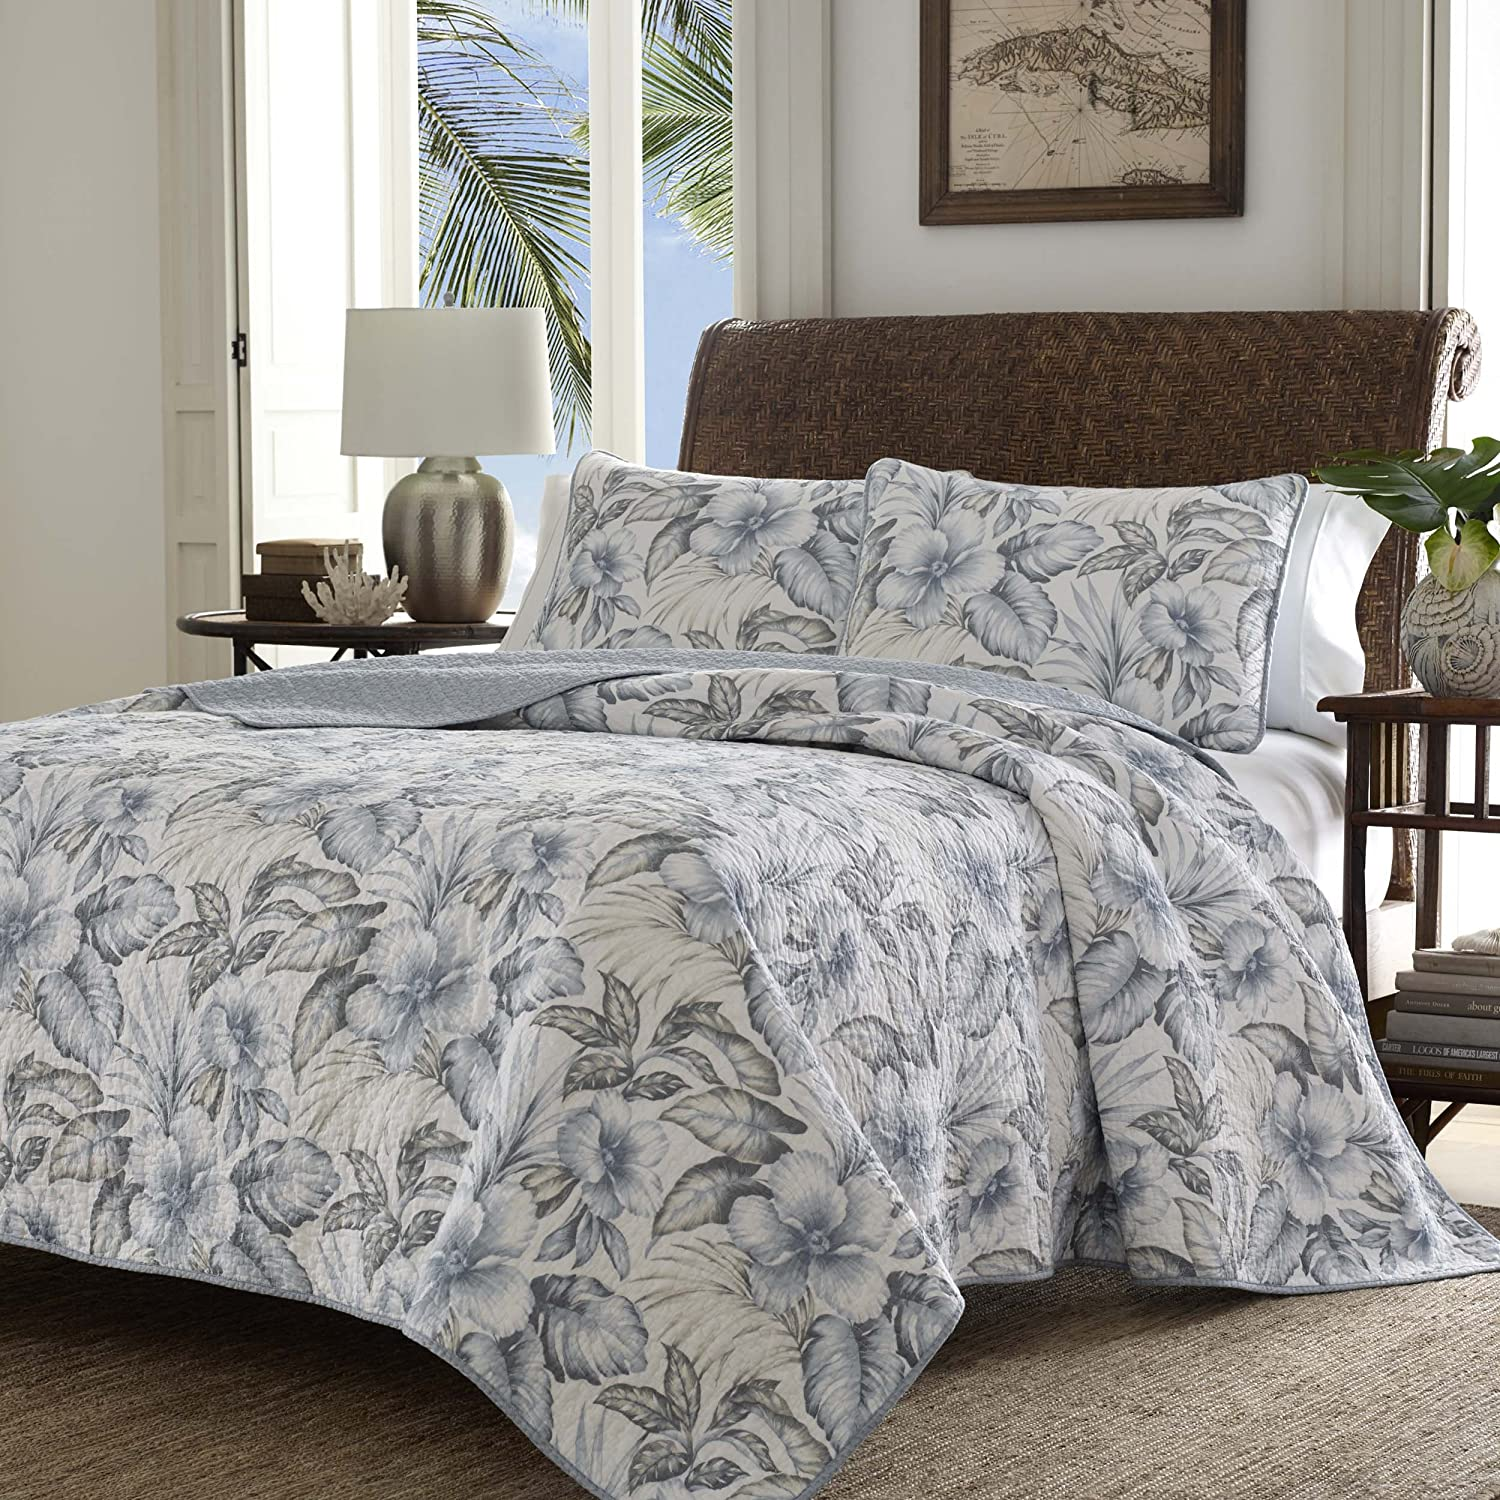 Tommy bahama bedding sets ease bedding with style tommy bahama 220111 casablanca garden casablanca reversible quilt setpelicans grayking gumiabroncs Gallery